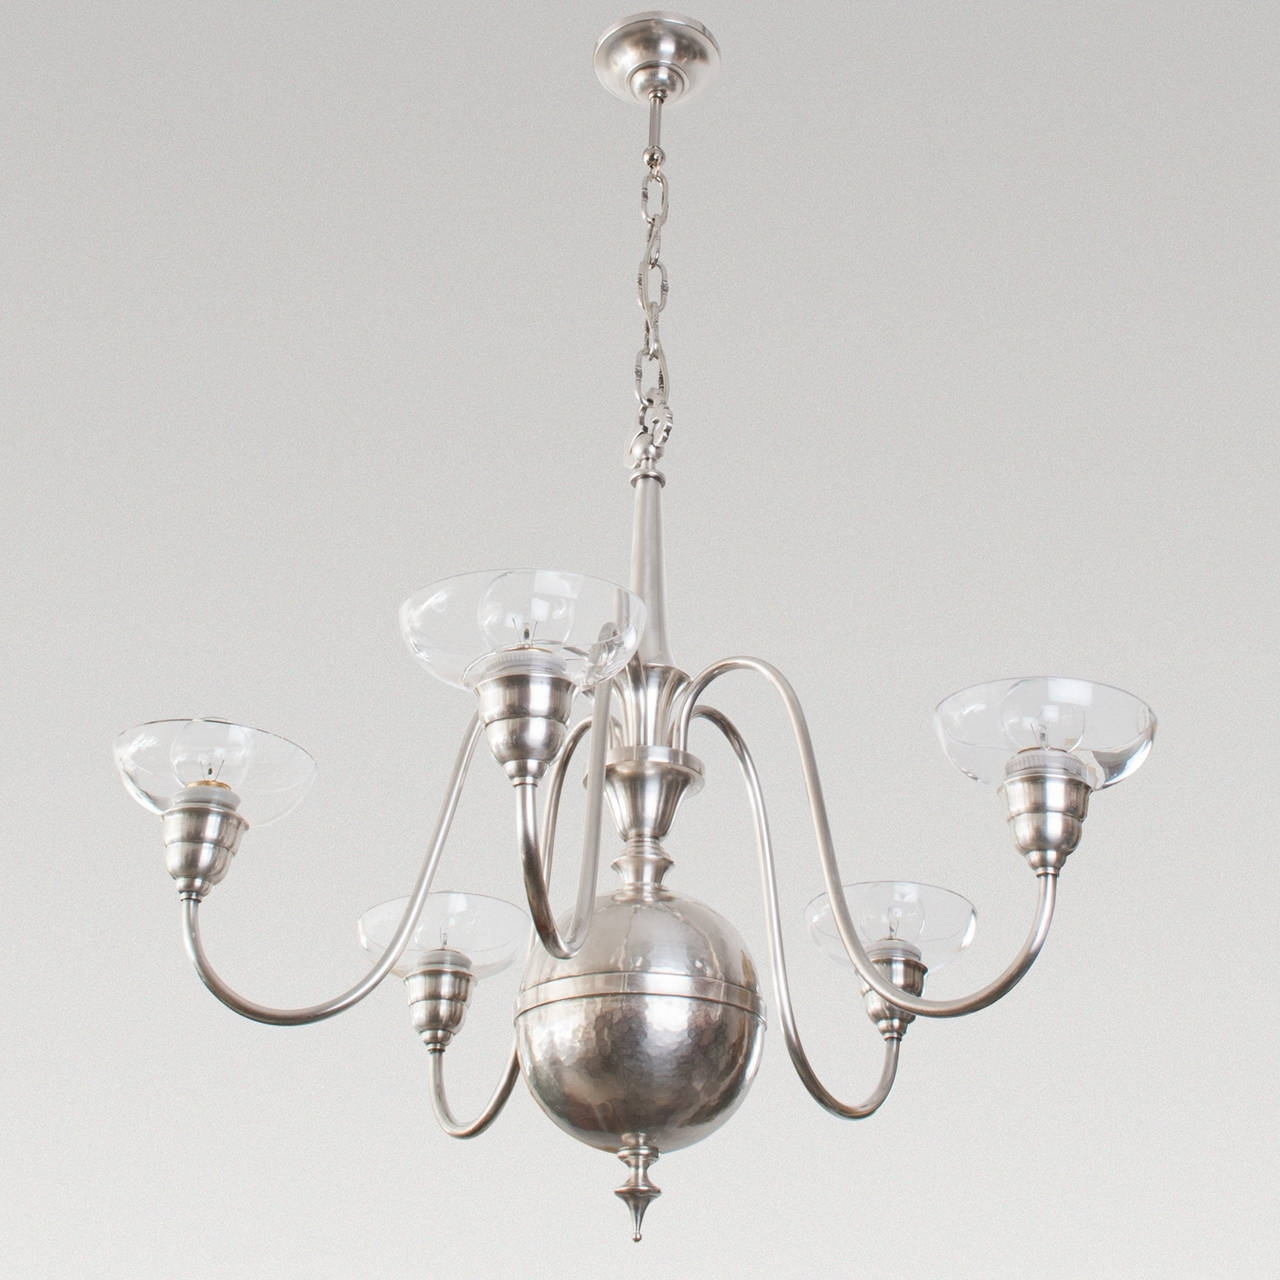 Modern Silver Chandelier Pertaining To Most Recently Released Modern Silver Chandelier : Chandelier Gallery (View 8 of 20)